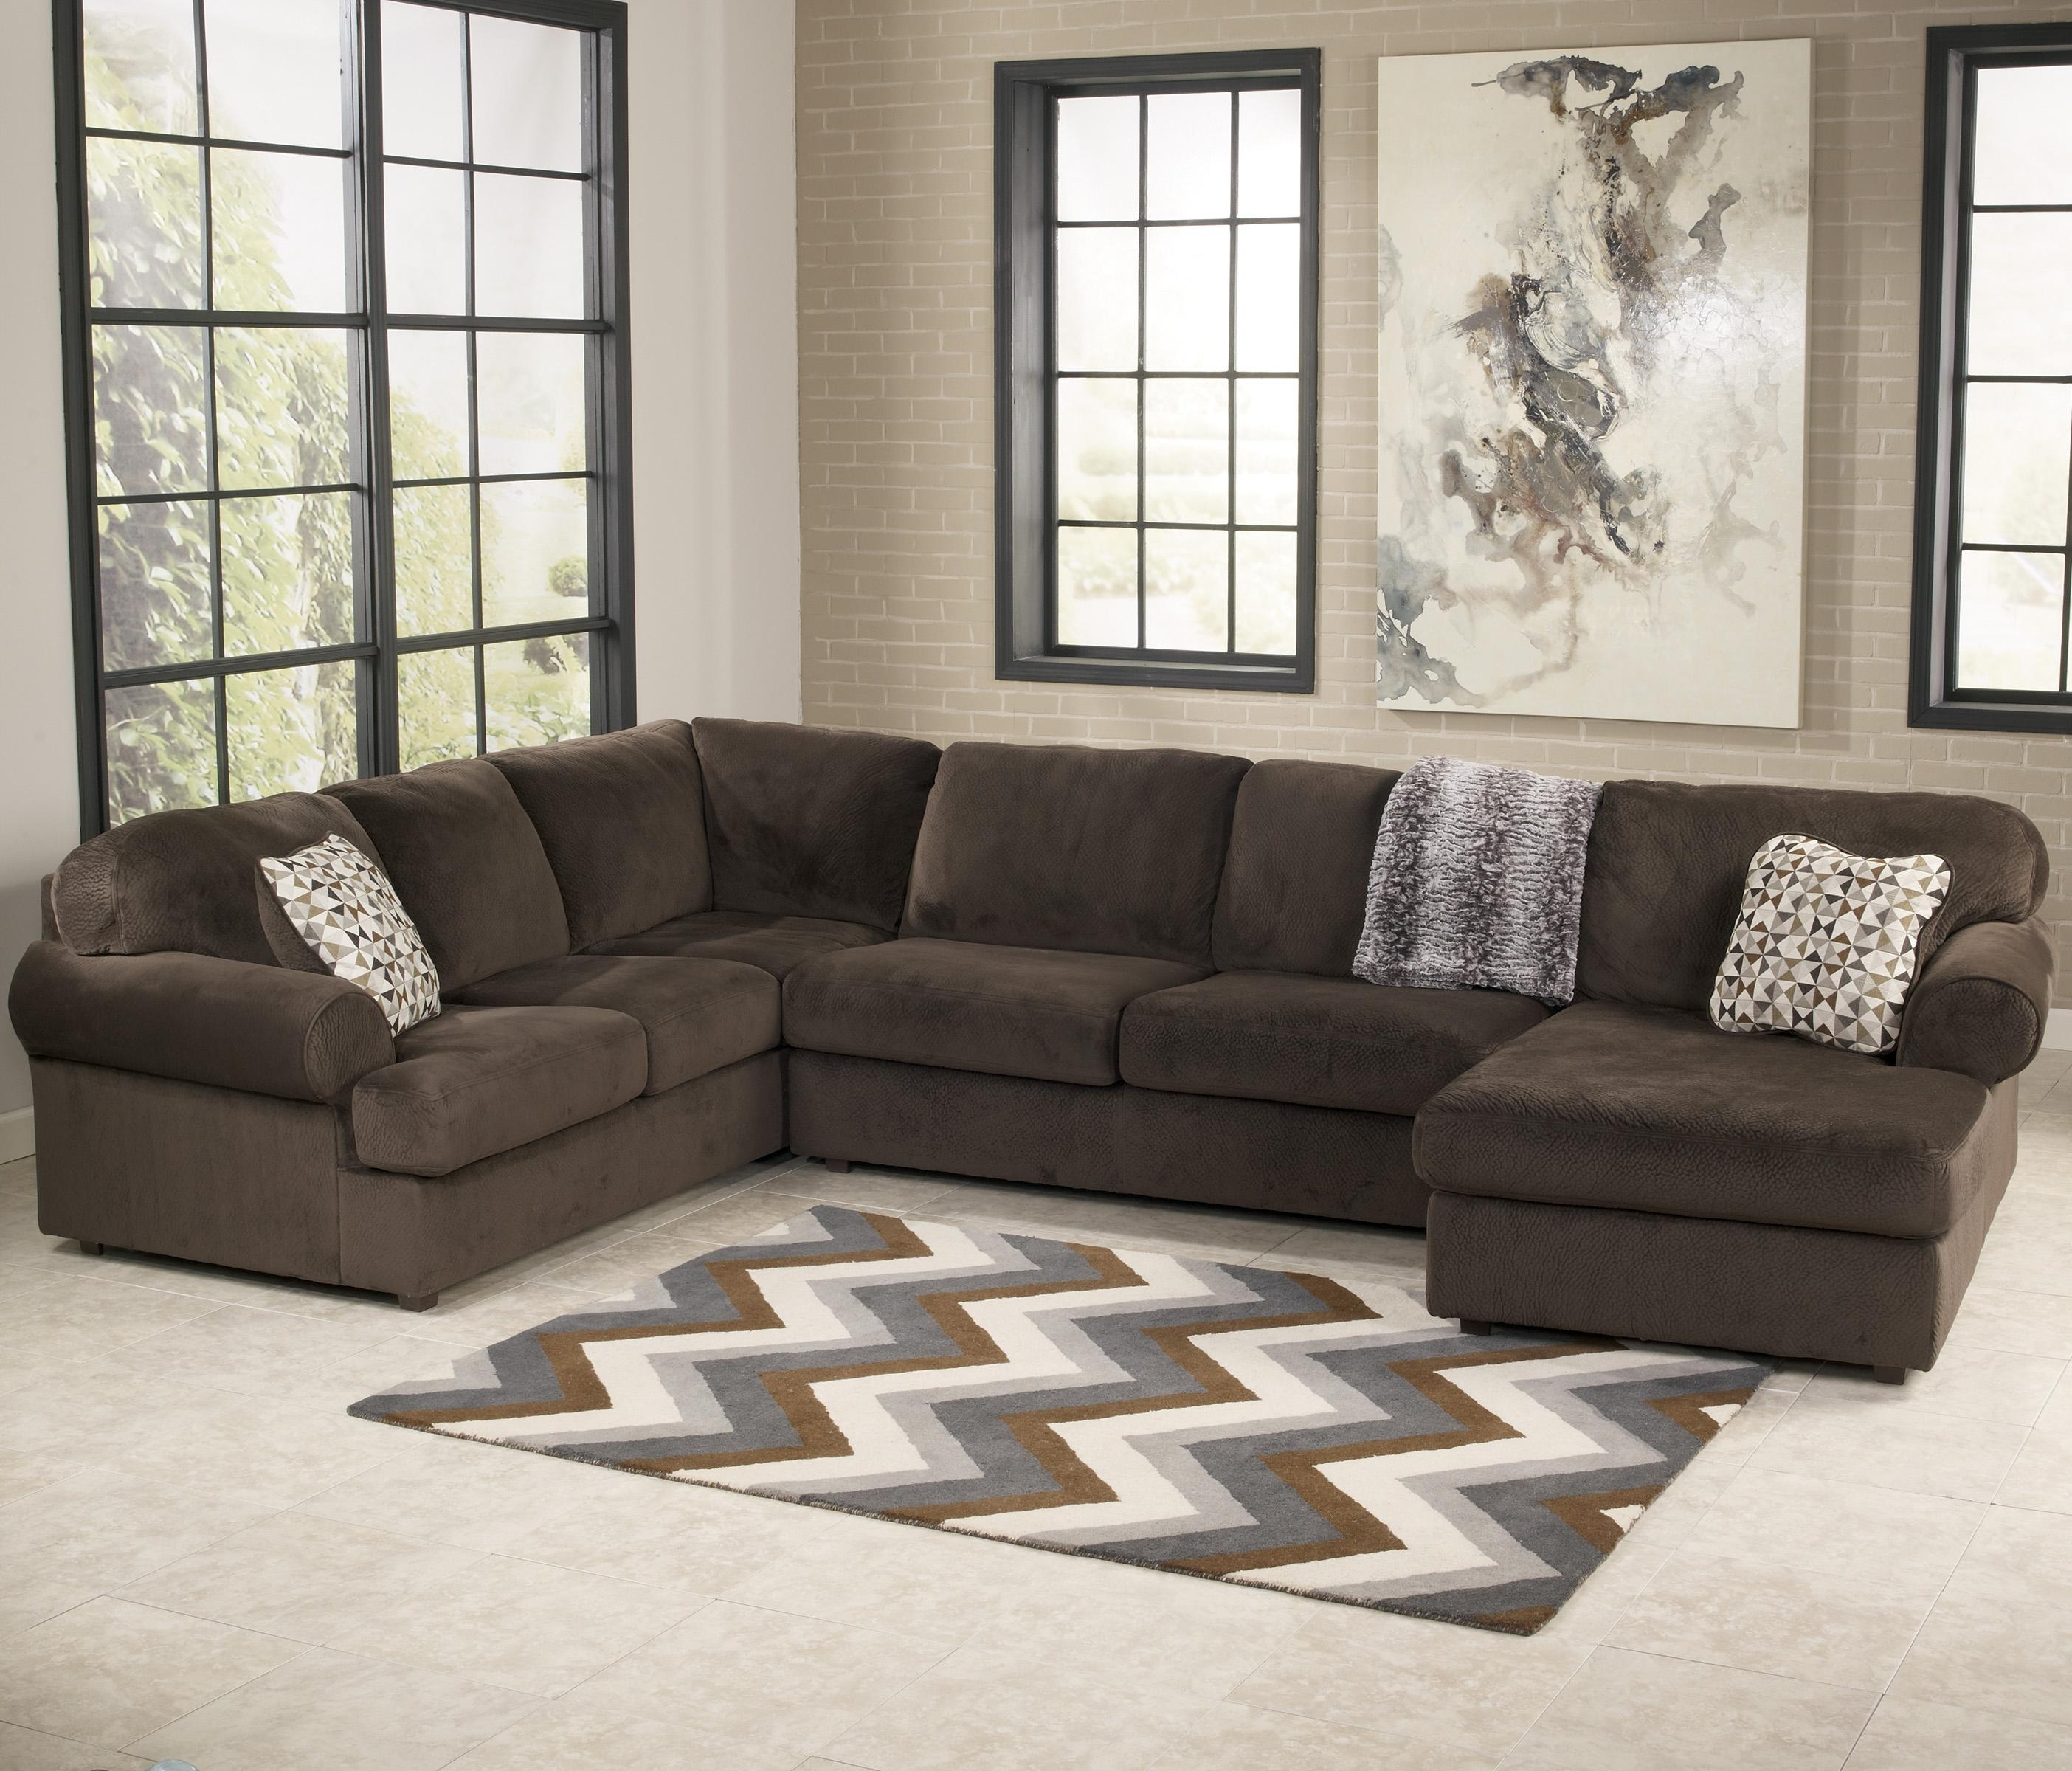 Signature Designashley Jessa Place – Chocolate Casual In 2018 Chocolate Sectional Sofas (View 4 of 15)